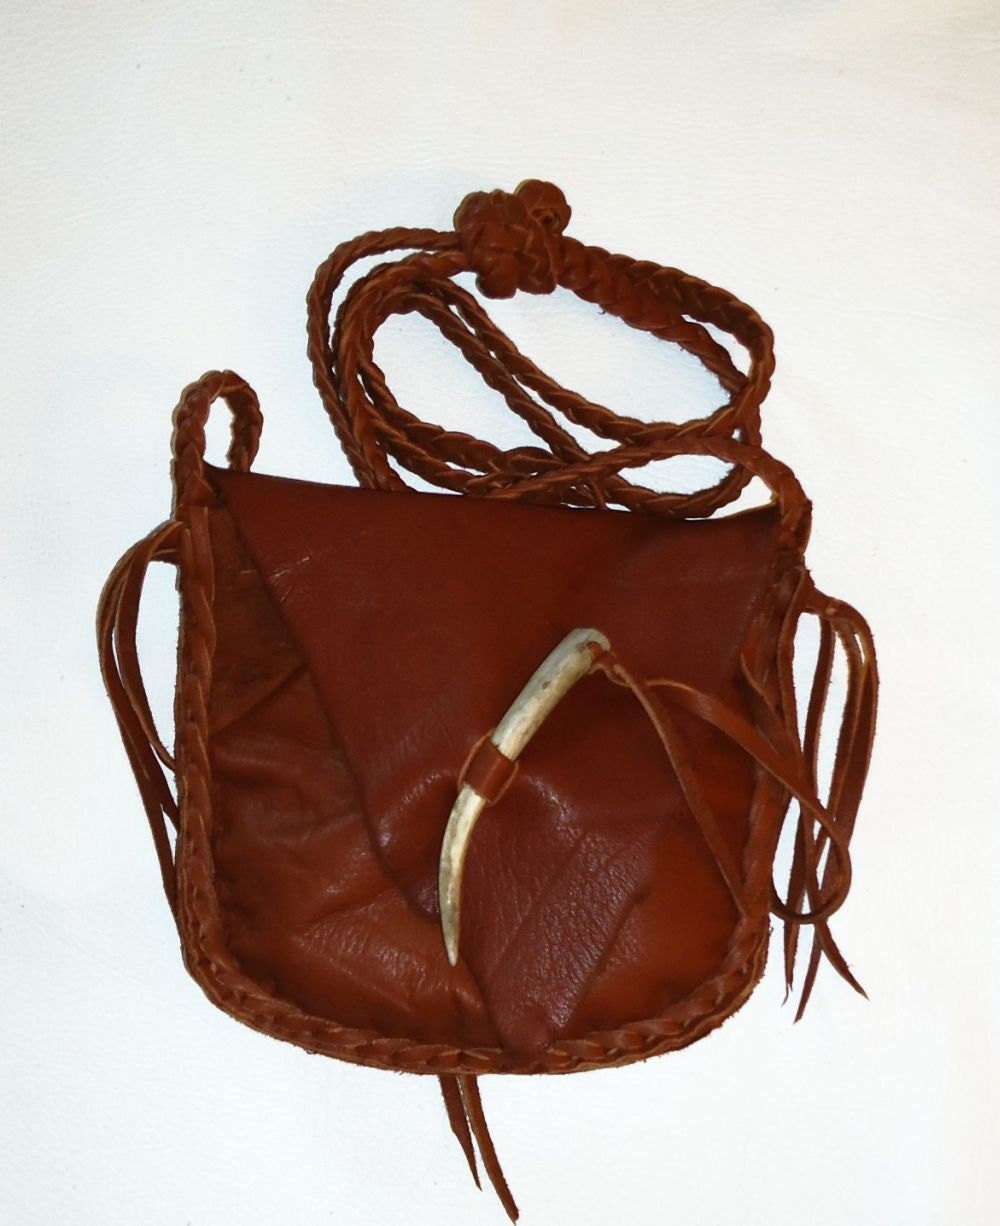 tobacco possibles bag mountain 2 compartments cross